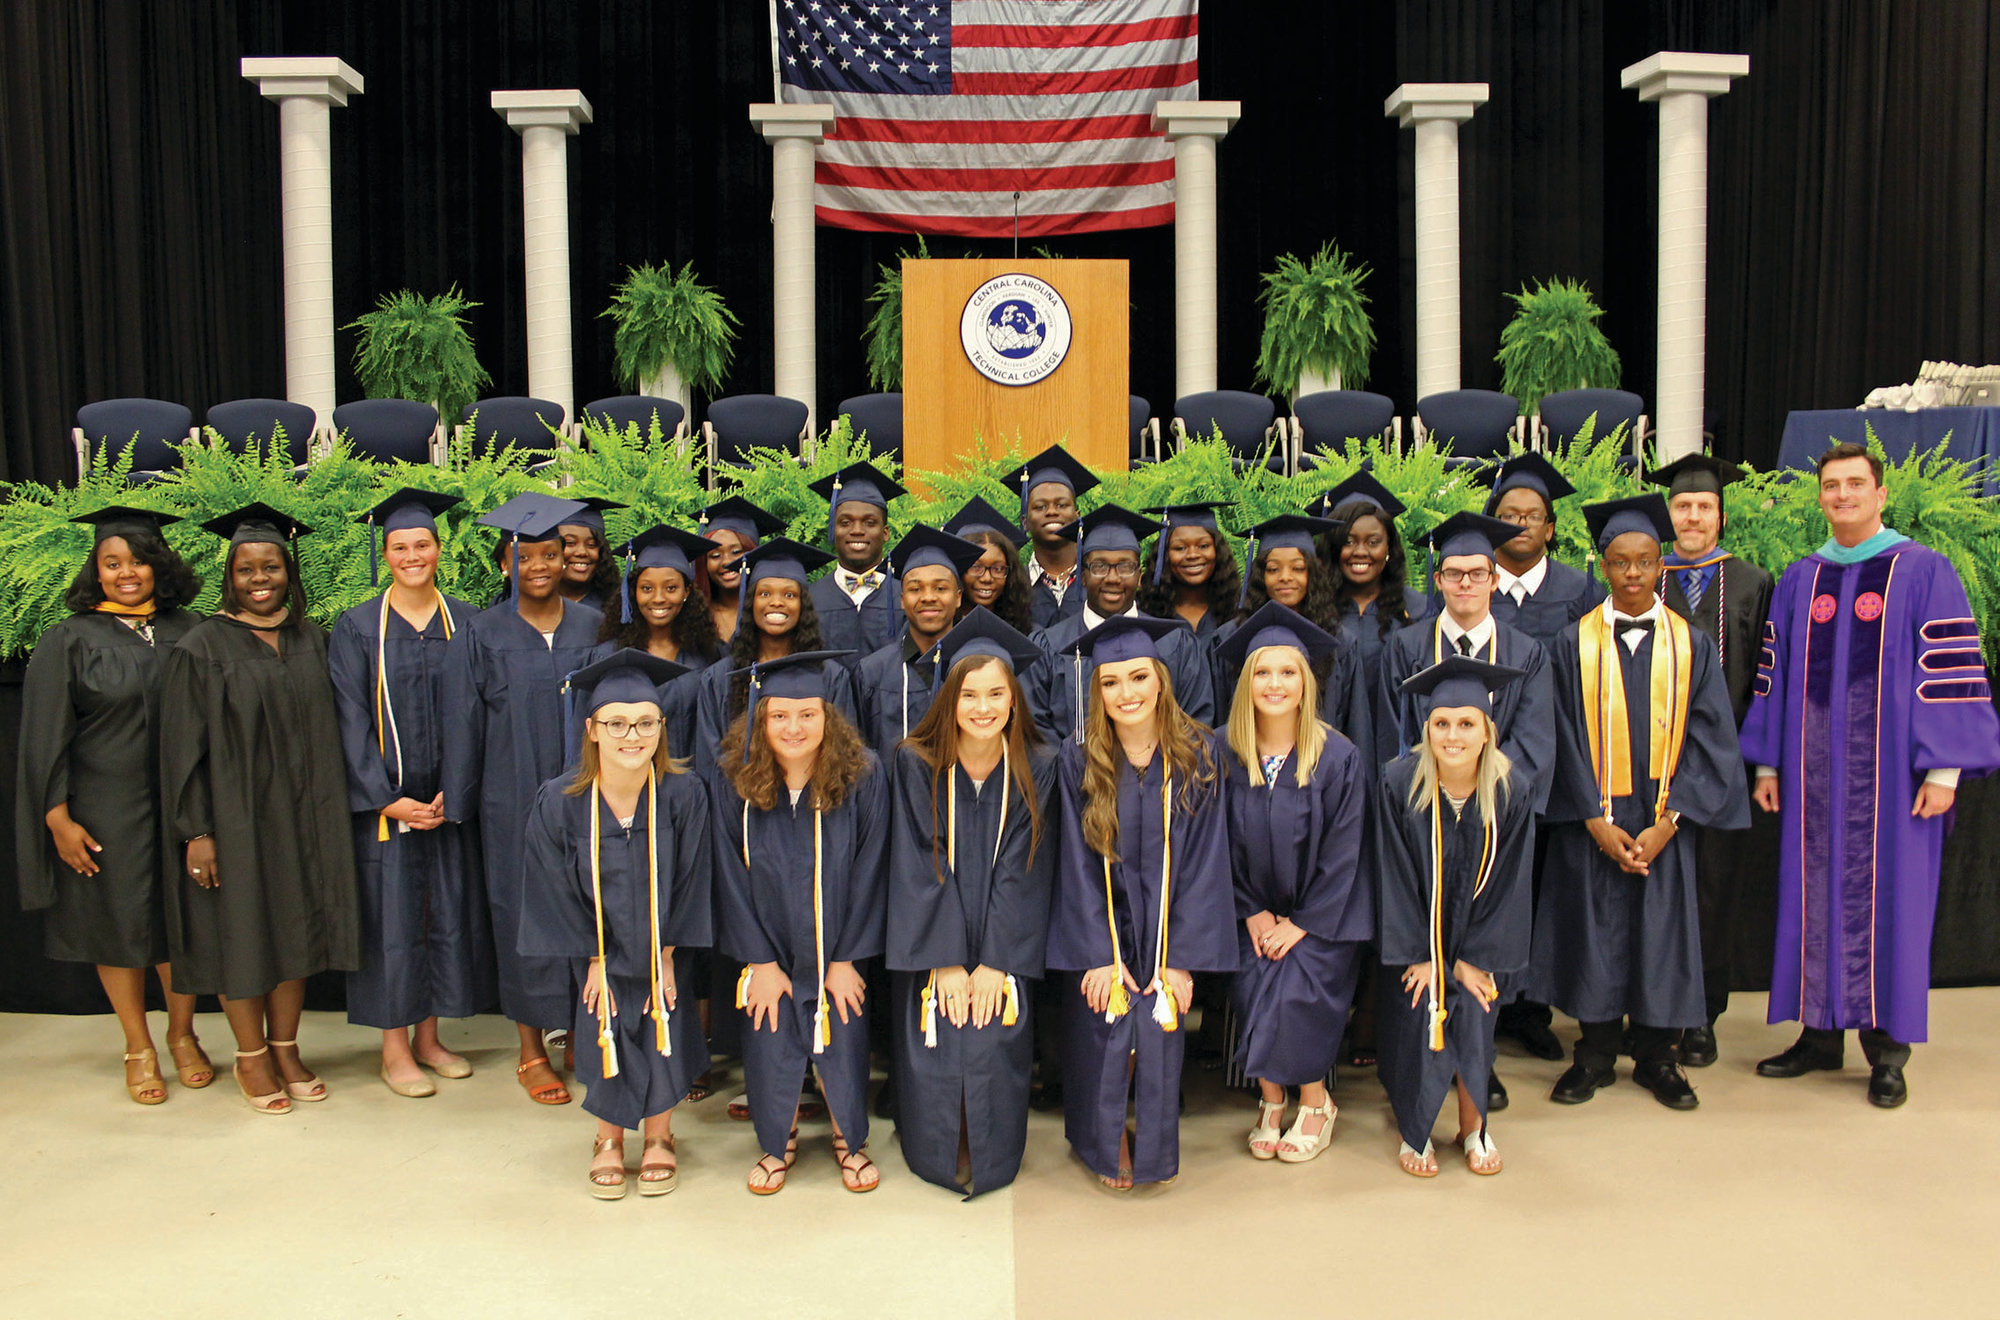 Thirty-two high school students enrolled in the Dual Enrollment or Early College Programs graduated with general education certificates or associate degrees from CCTC before they finished high school.